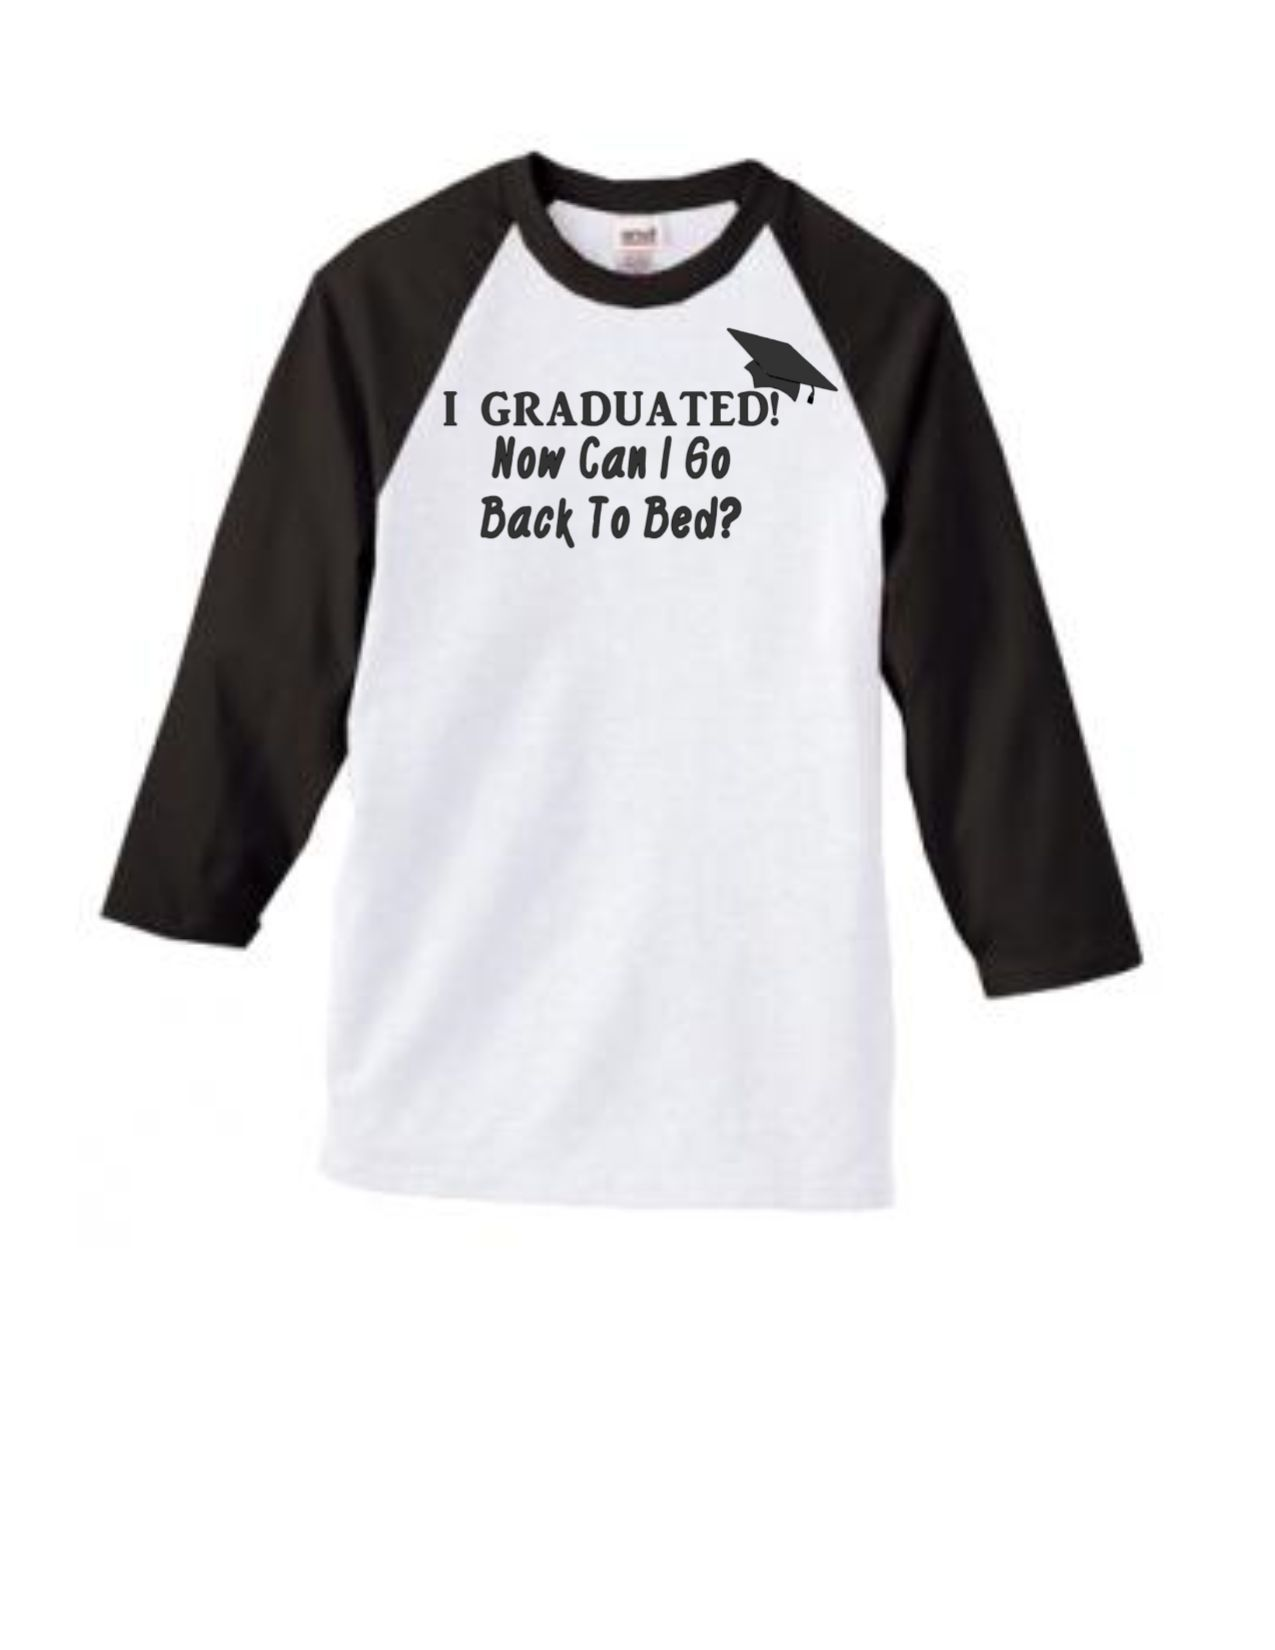 8fbdee7c5 What is more appropriate for a High School Senior...can I go back to bed,  too! This is the PREFECT gift for that High School Senior guy that you just  don't ...